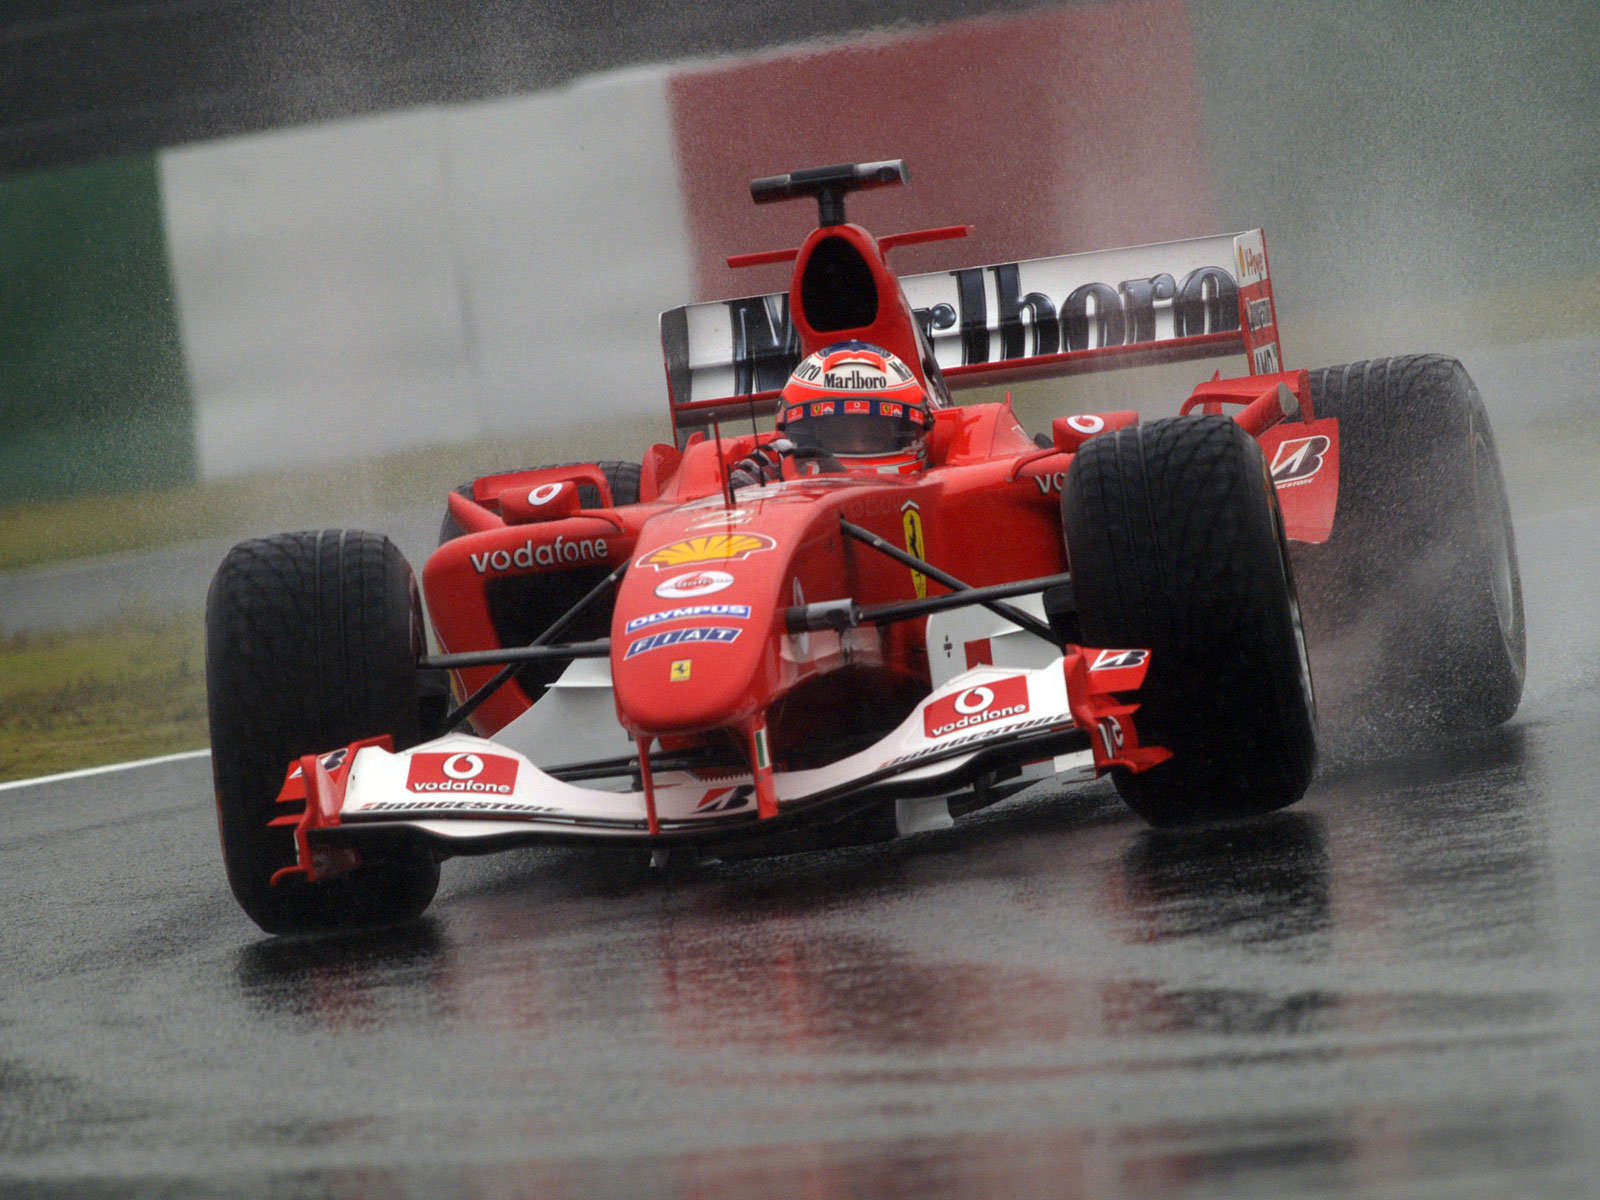 The Best Car Wallpapers In The World 2004 Ferrari F2004 Top Speed